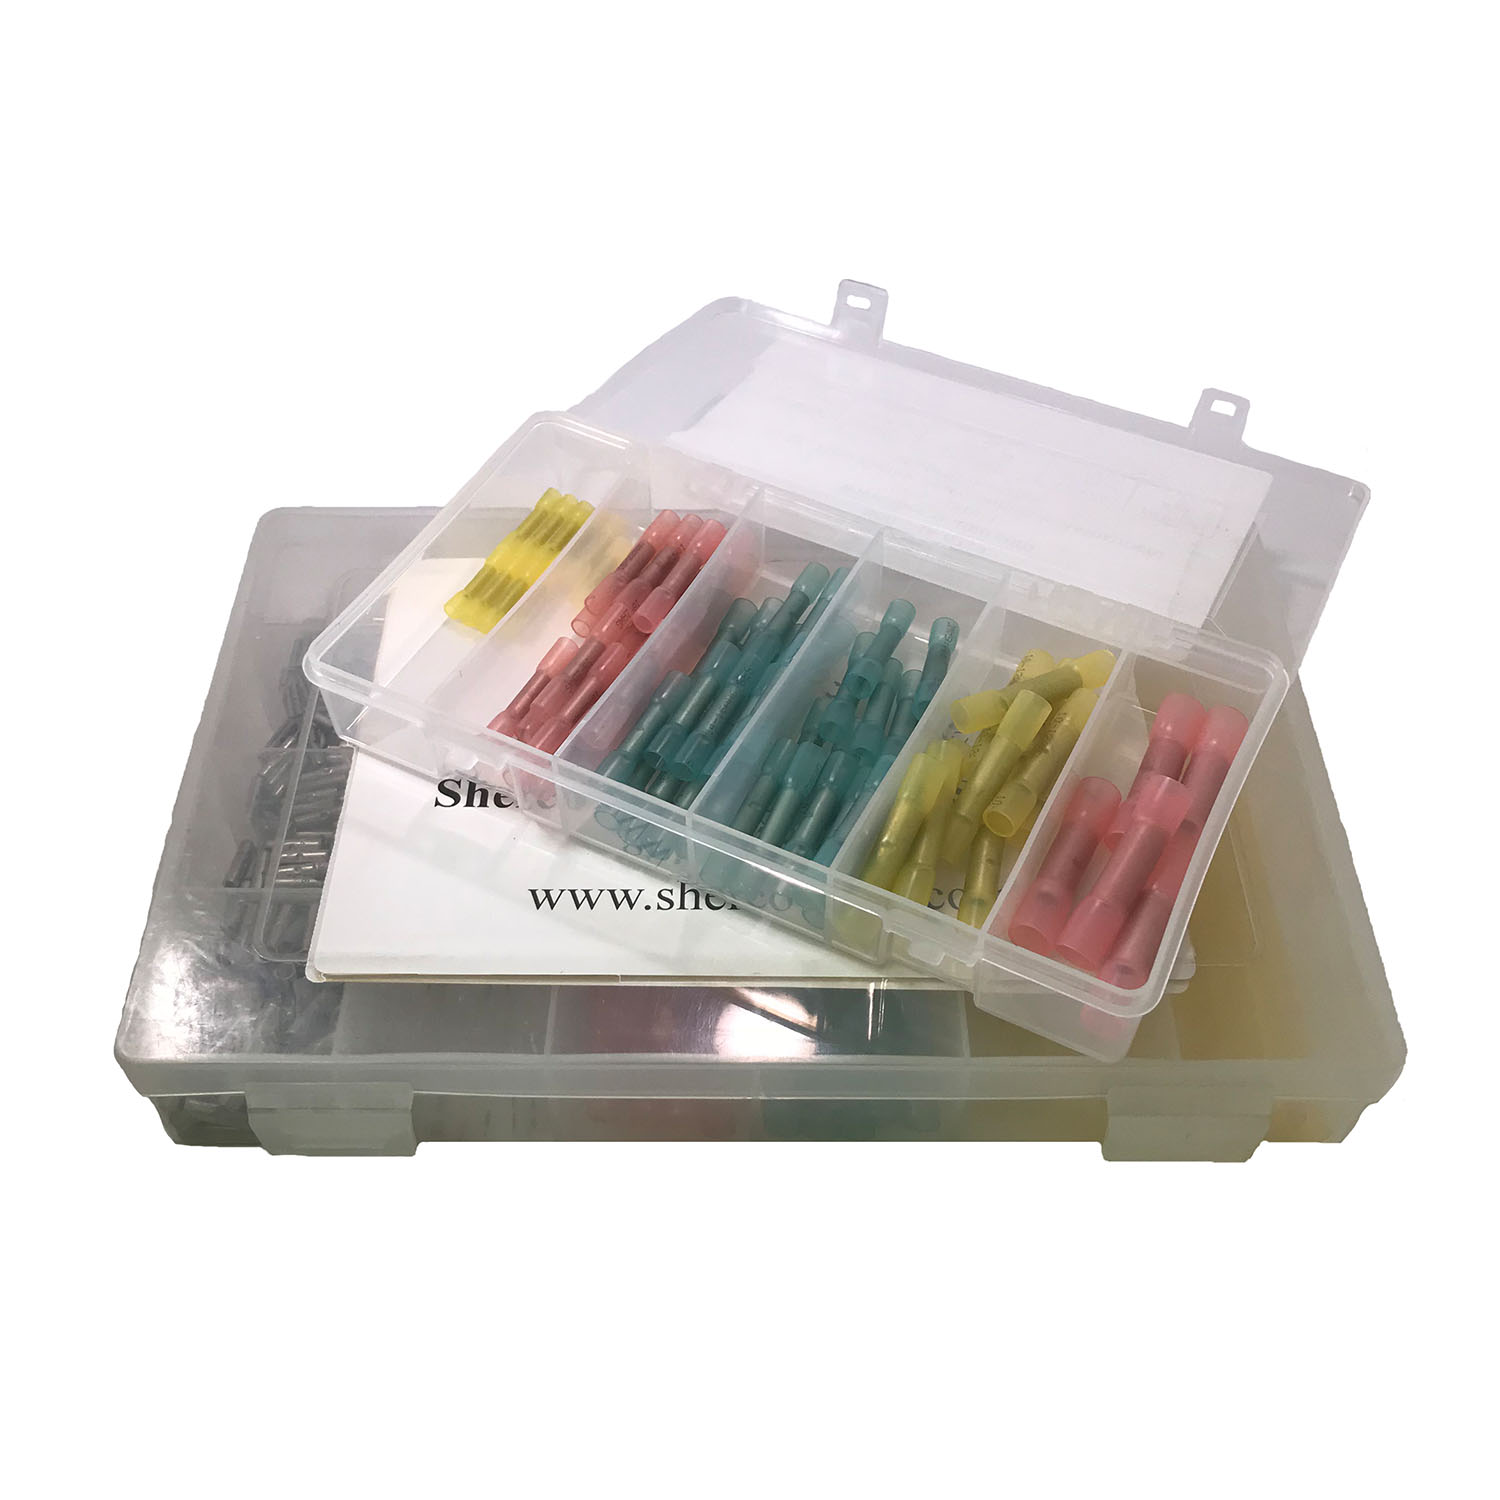 Electrical Supplies Wire Connectors Terminals Sherco Automotive Vehicle Wiring Specialists Marine Boxed Assortment Kits